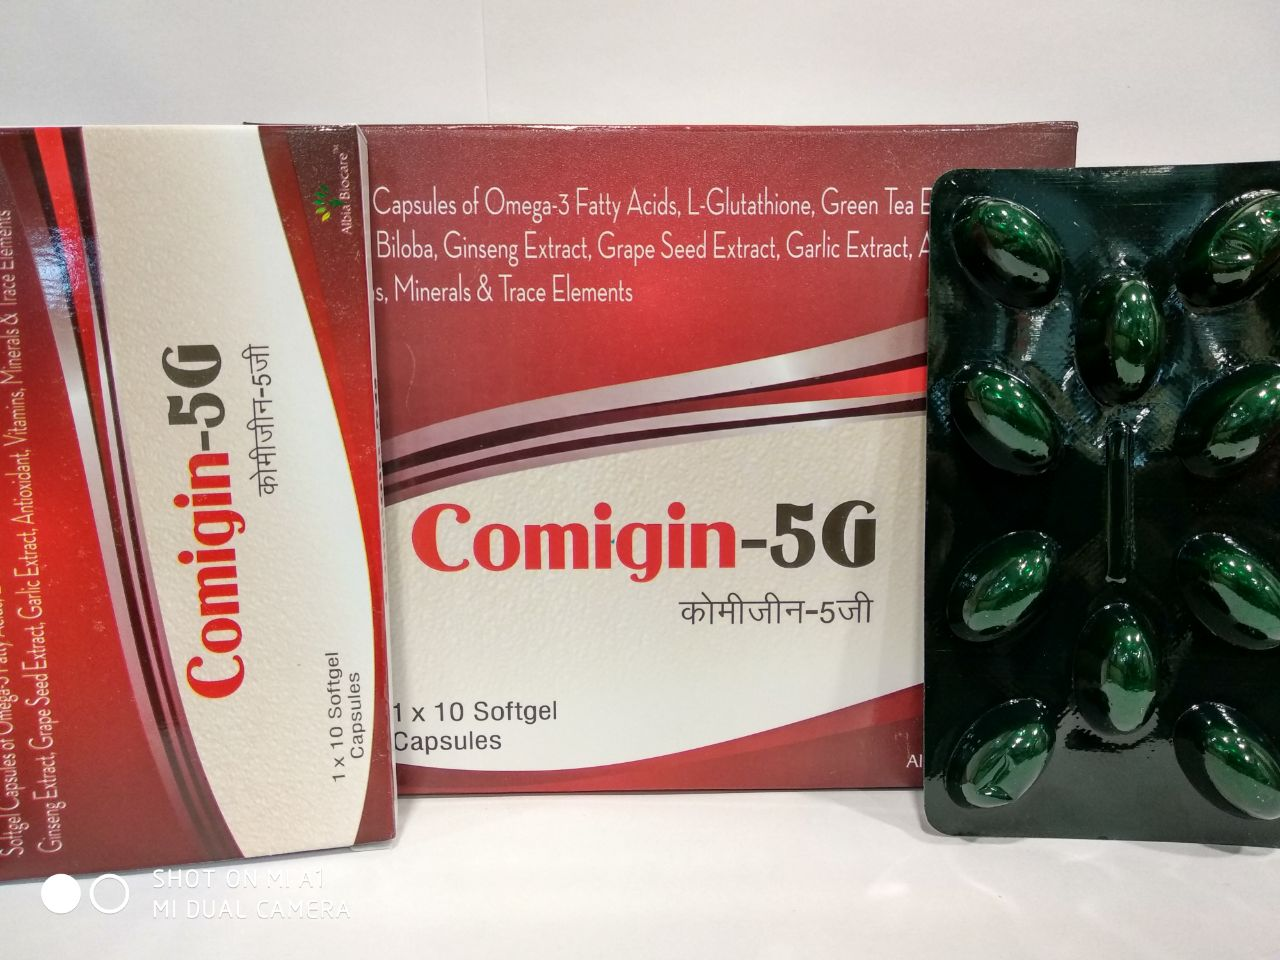 COMIGIN-5G SOFTGEL | Ginseng + Gingko Biloba + Grape Seed Extract + Green Tea Extract + Garlic Extract + L-Glutathione + Omega-3 Fatty Acids + Amino Acids + Vitamins + Minerals